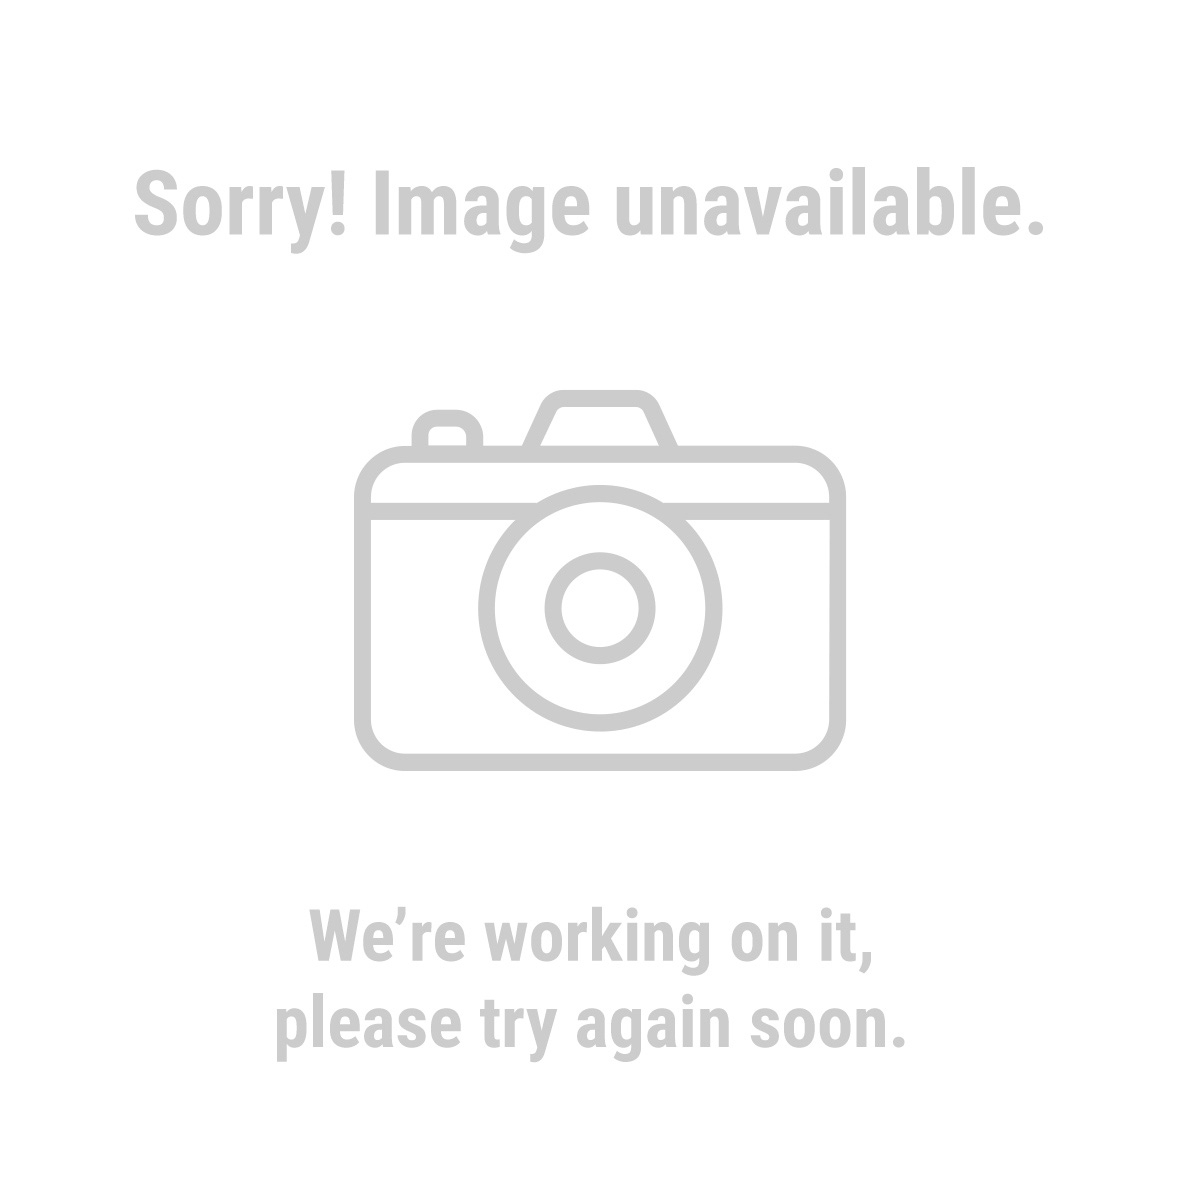 HFT 61590 1-1/2 in. Keyed-Alike Padlocks 3 Pc